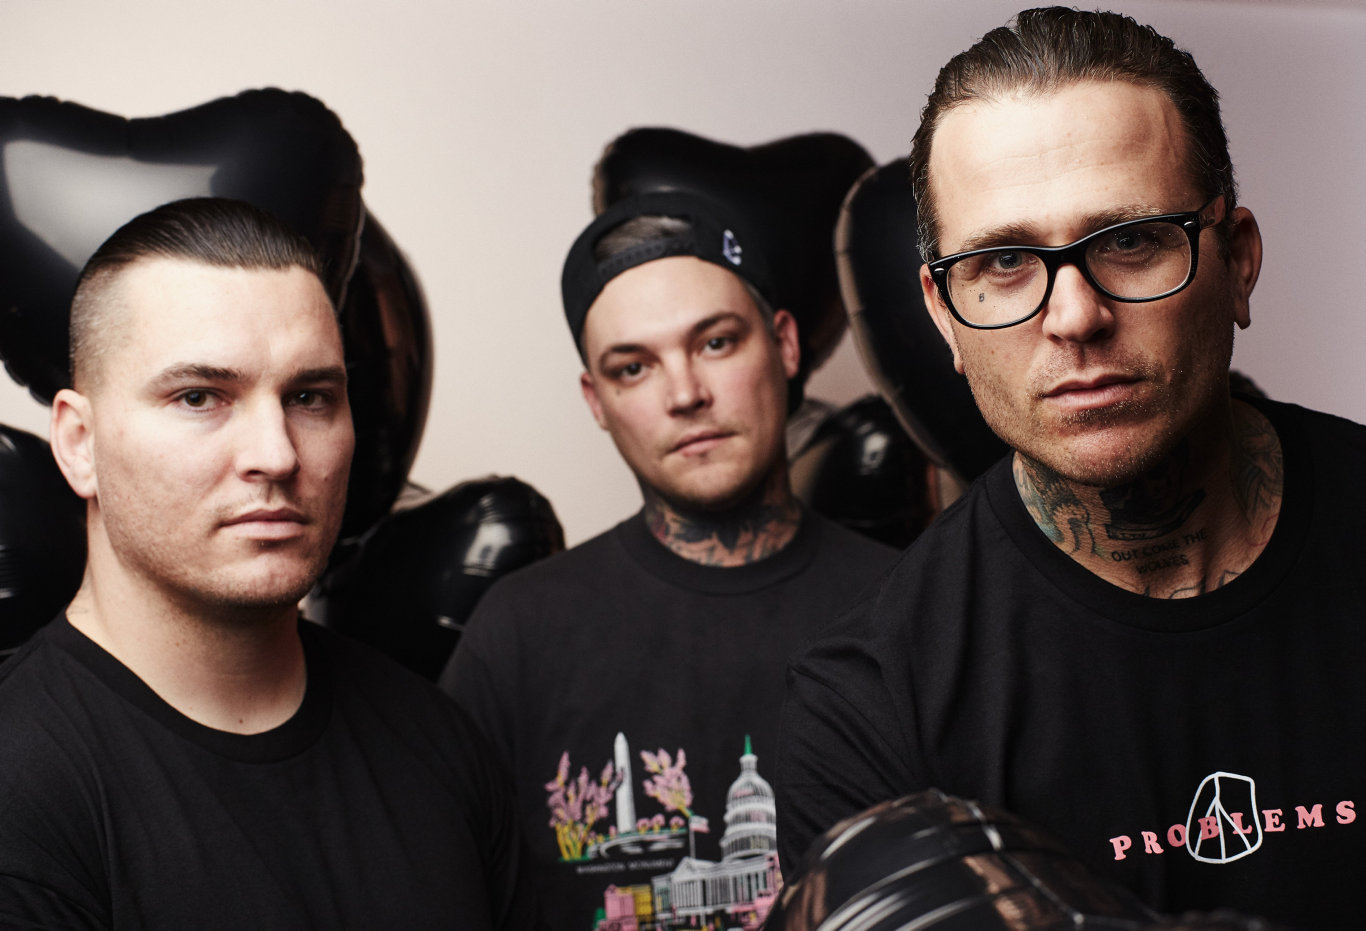 Did The Amity Affliction have a right to single out Trump supporters at a US show?